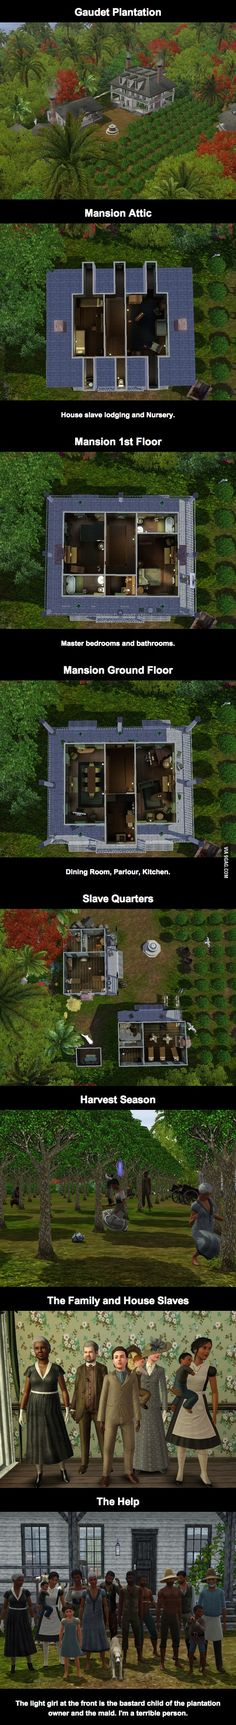 Weird People and their Sim Games: This person created a Realistic Sims plantation